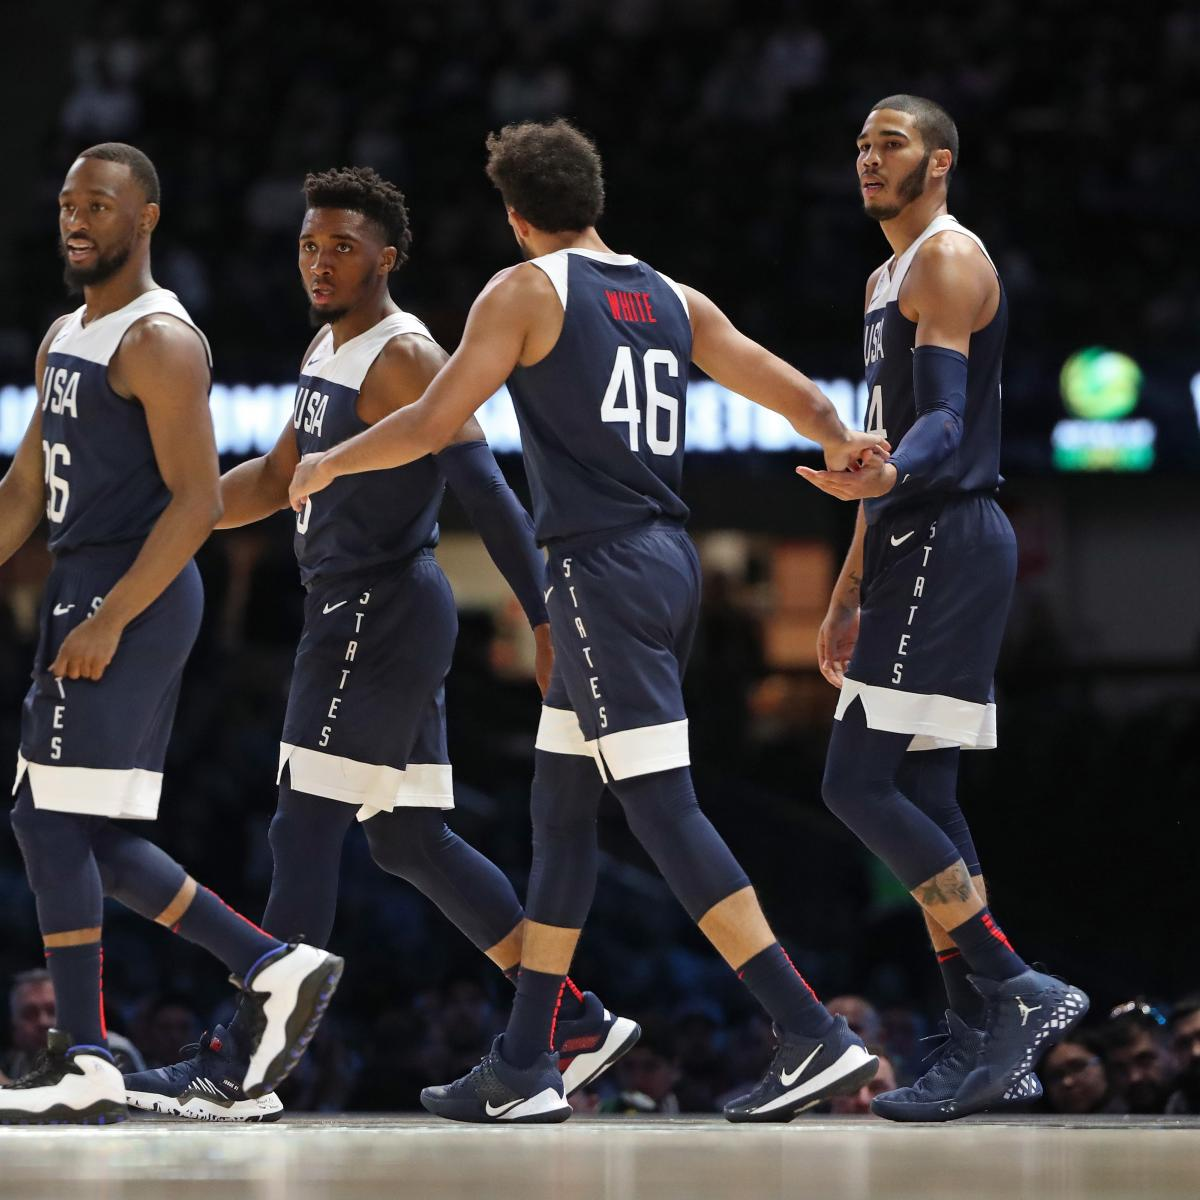 FIBA World Cup 2019: Saturday Odds, Schedule, Live Stream and Predictions